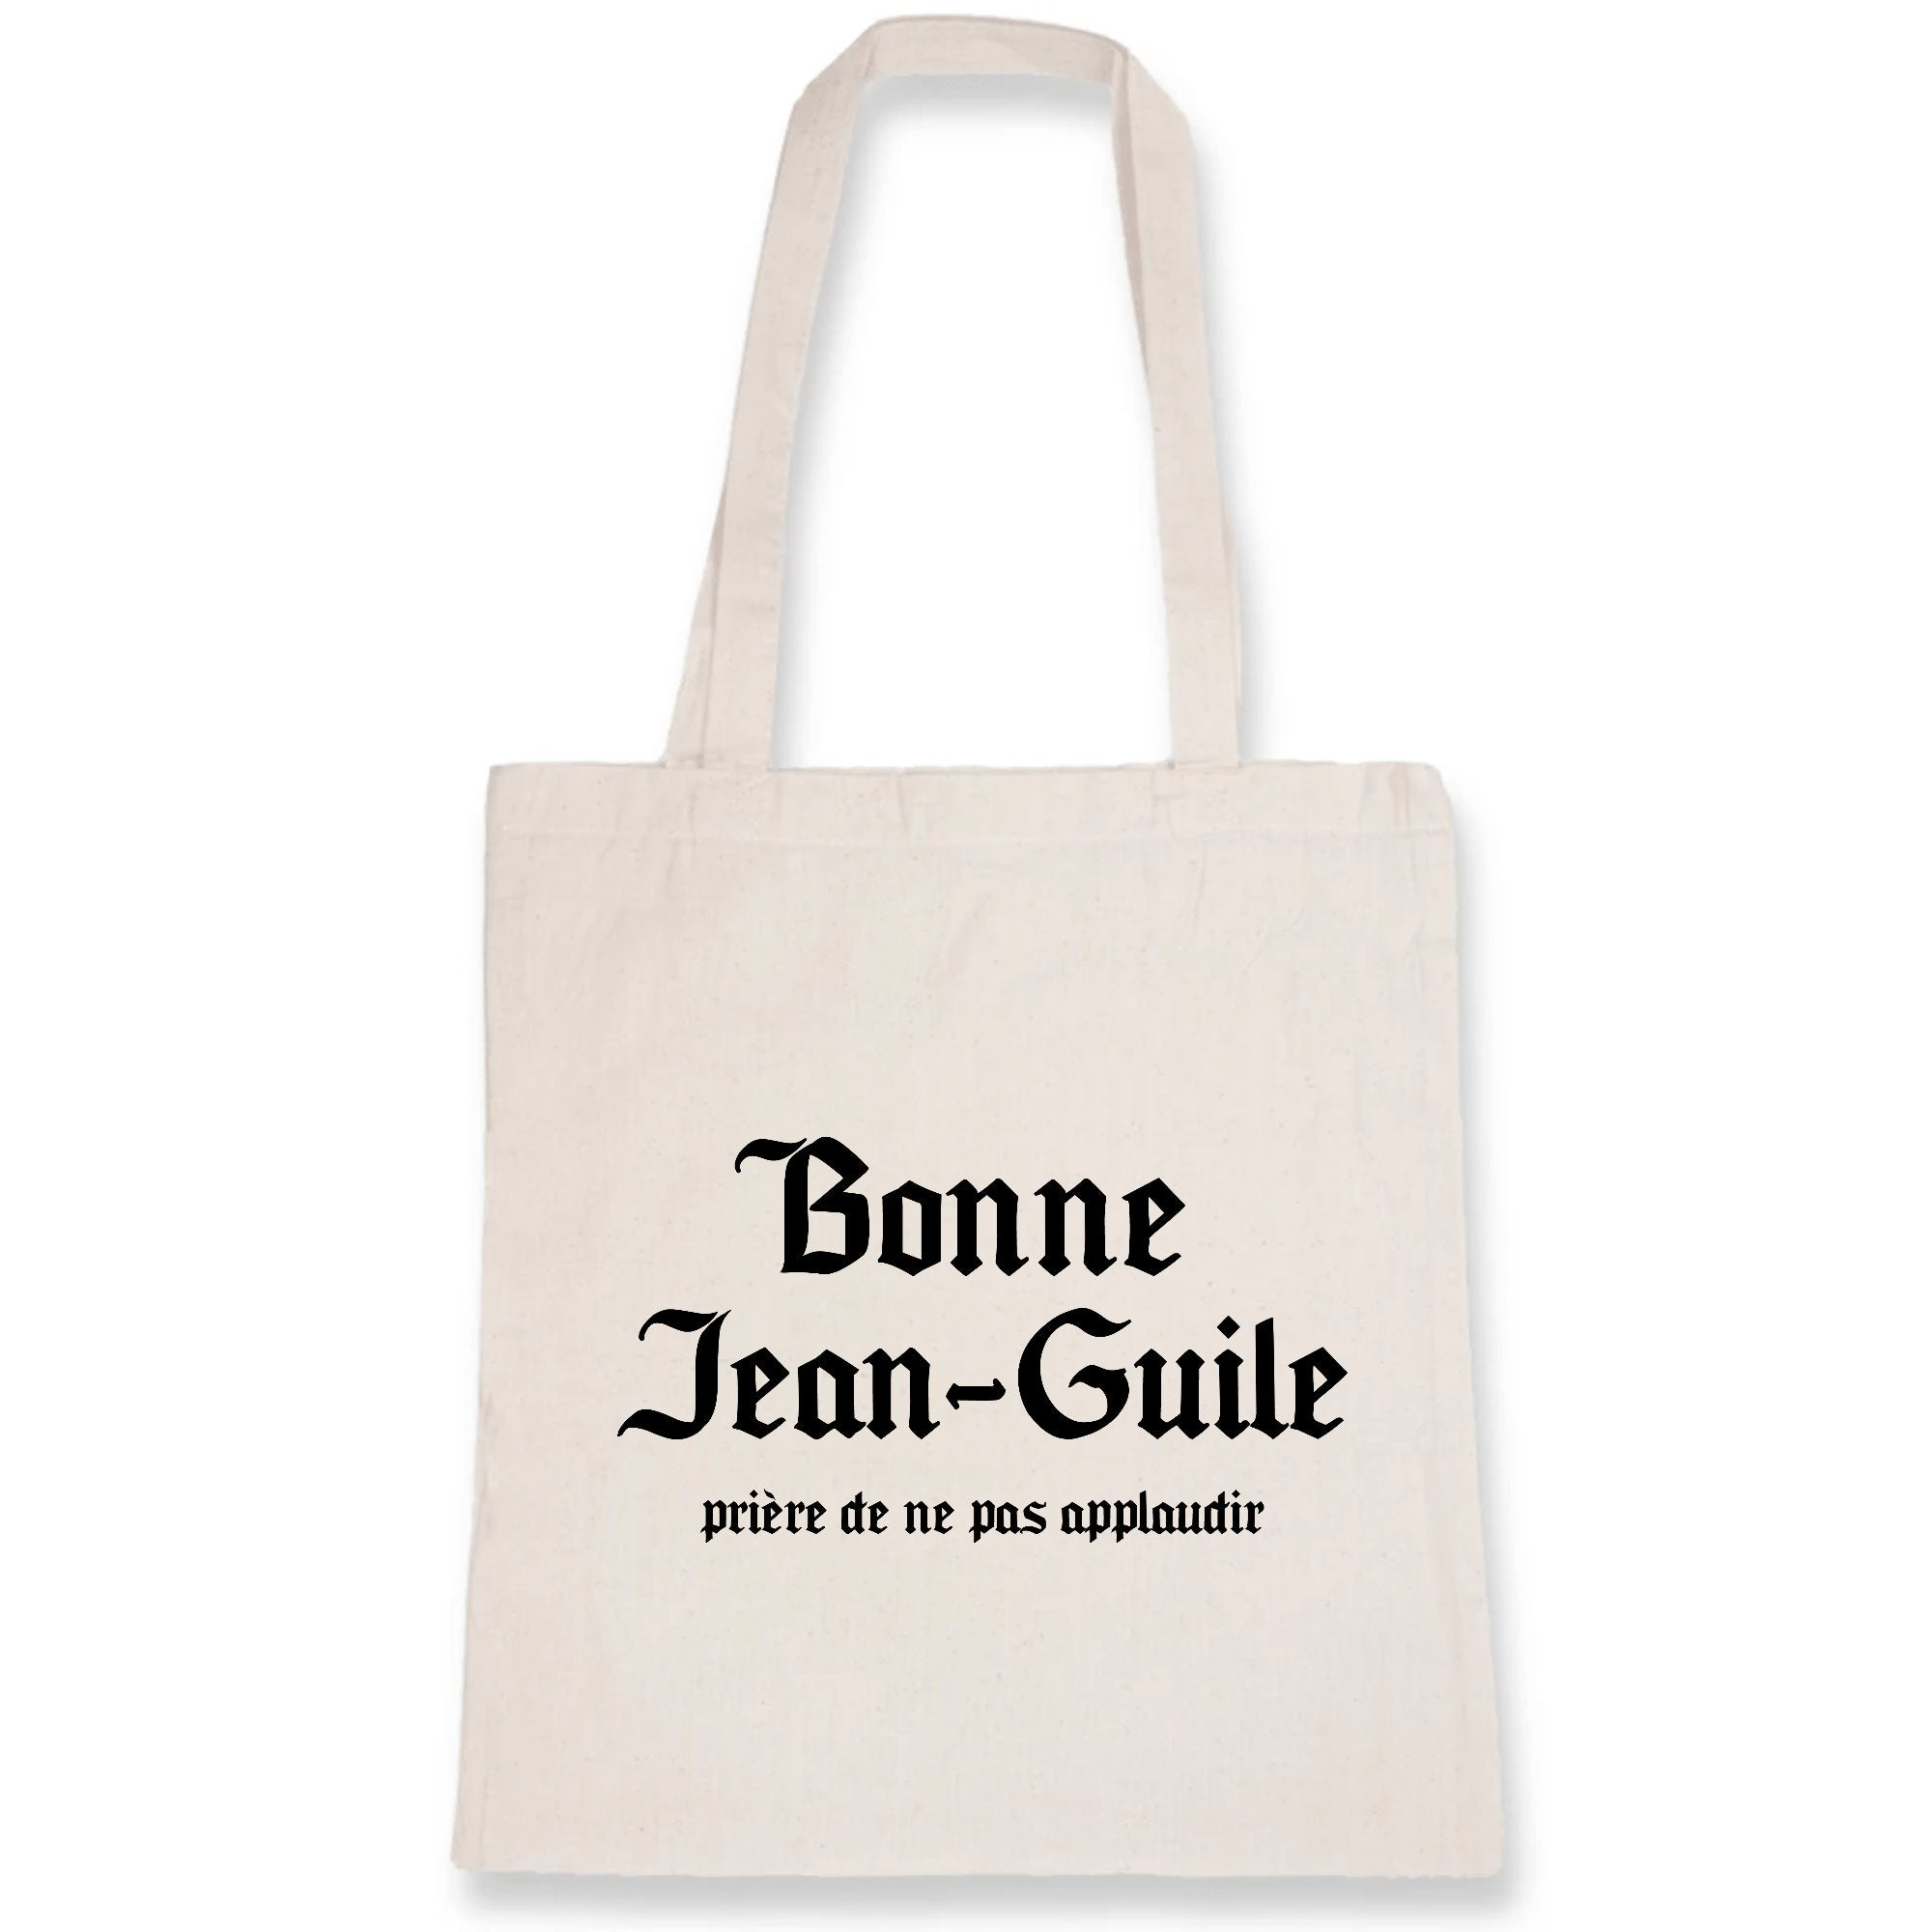 Tote bag Jean-Guile